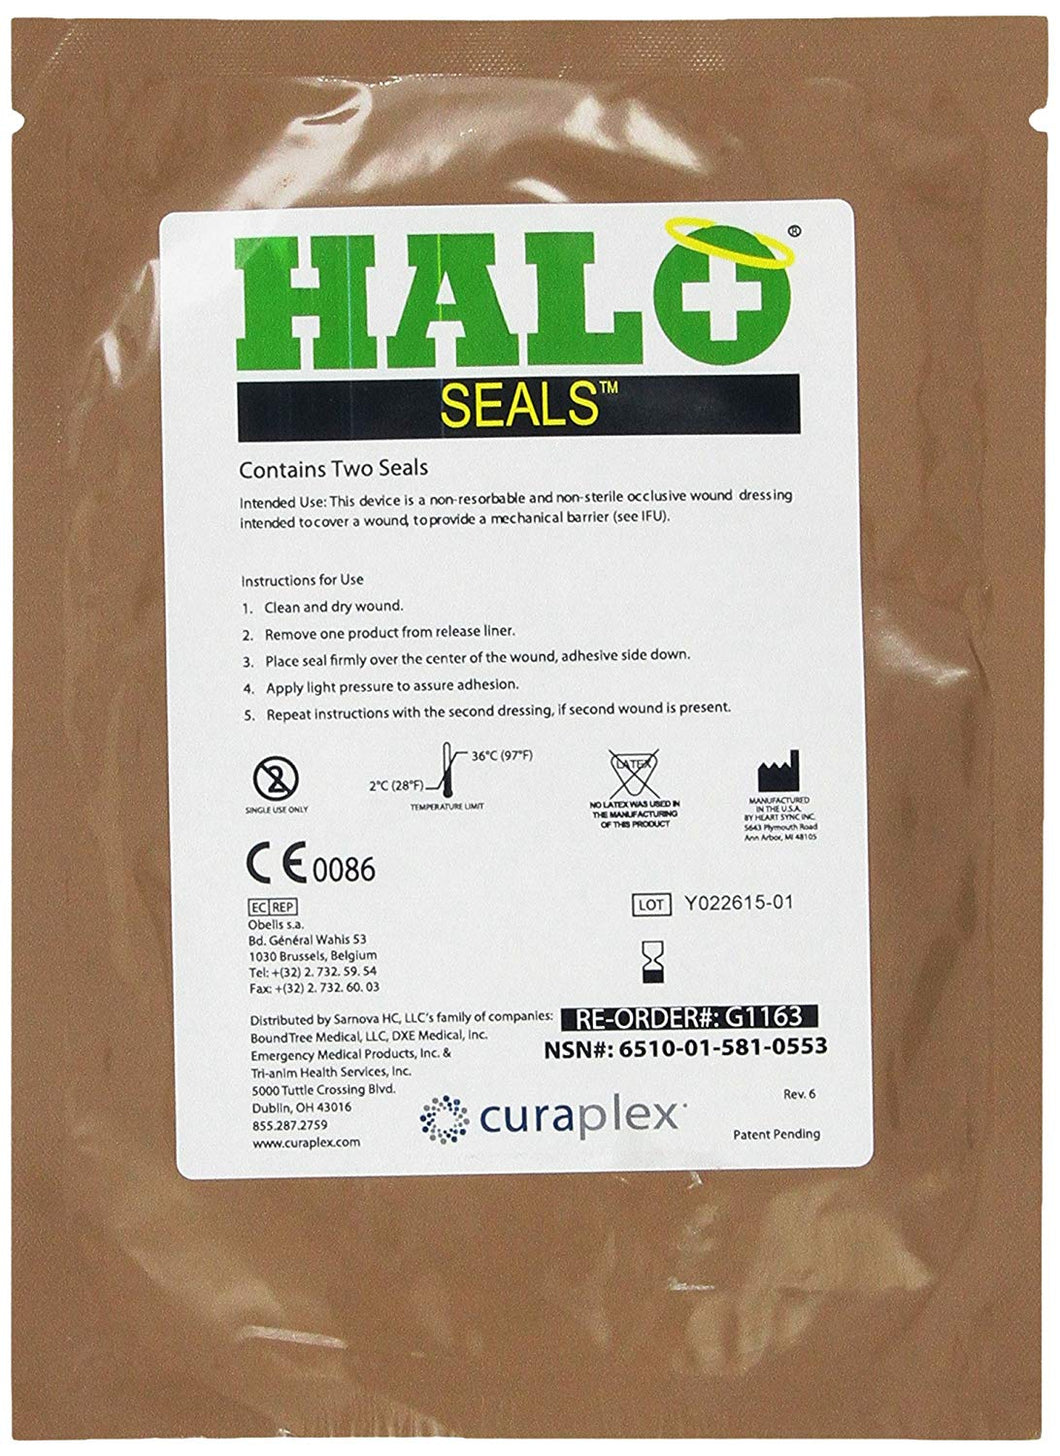 HALO Chest Seal - Carolina Readiness, dooms day prepper supplies online